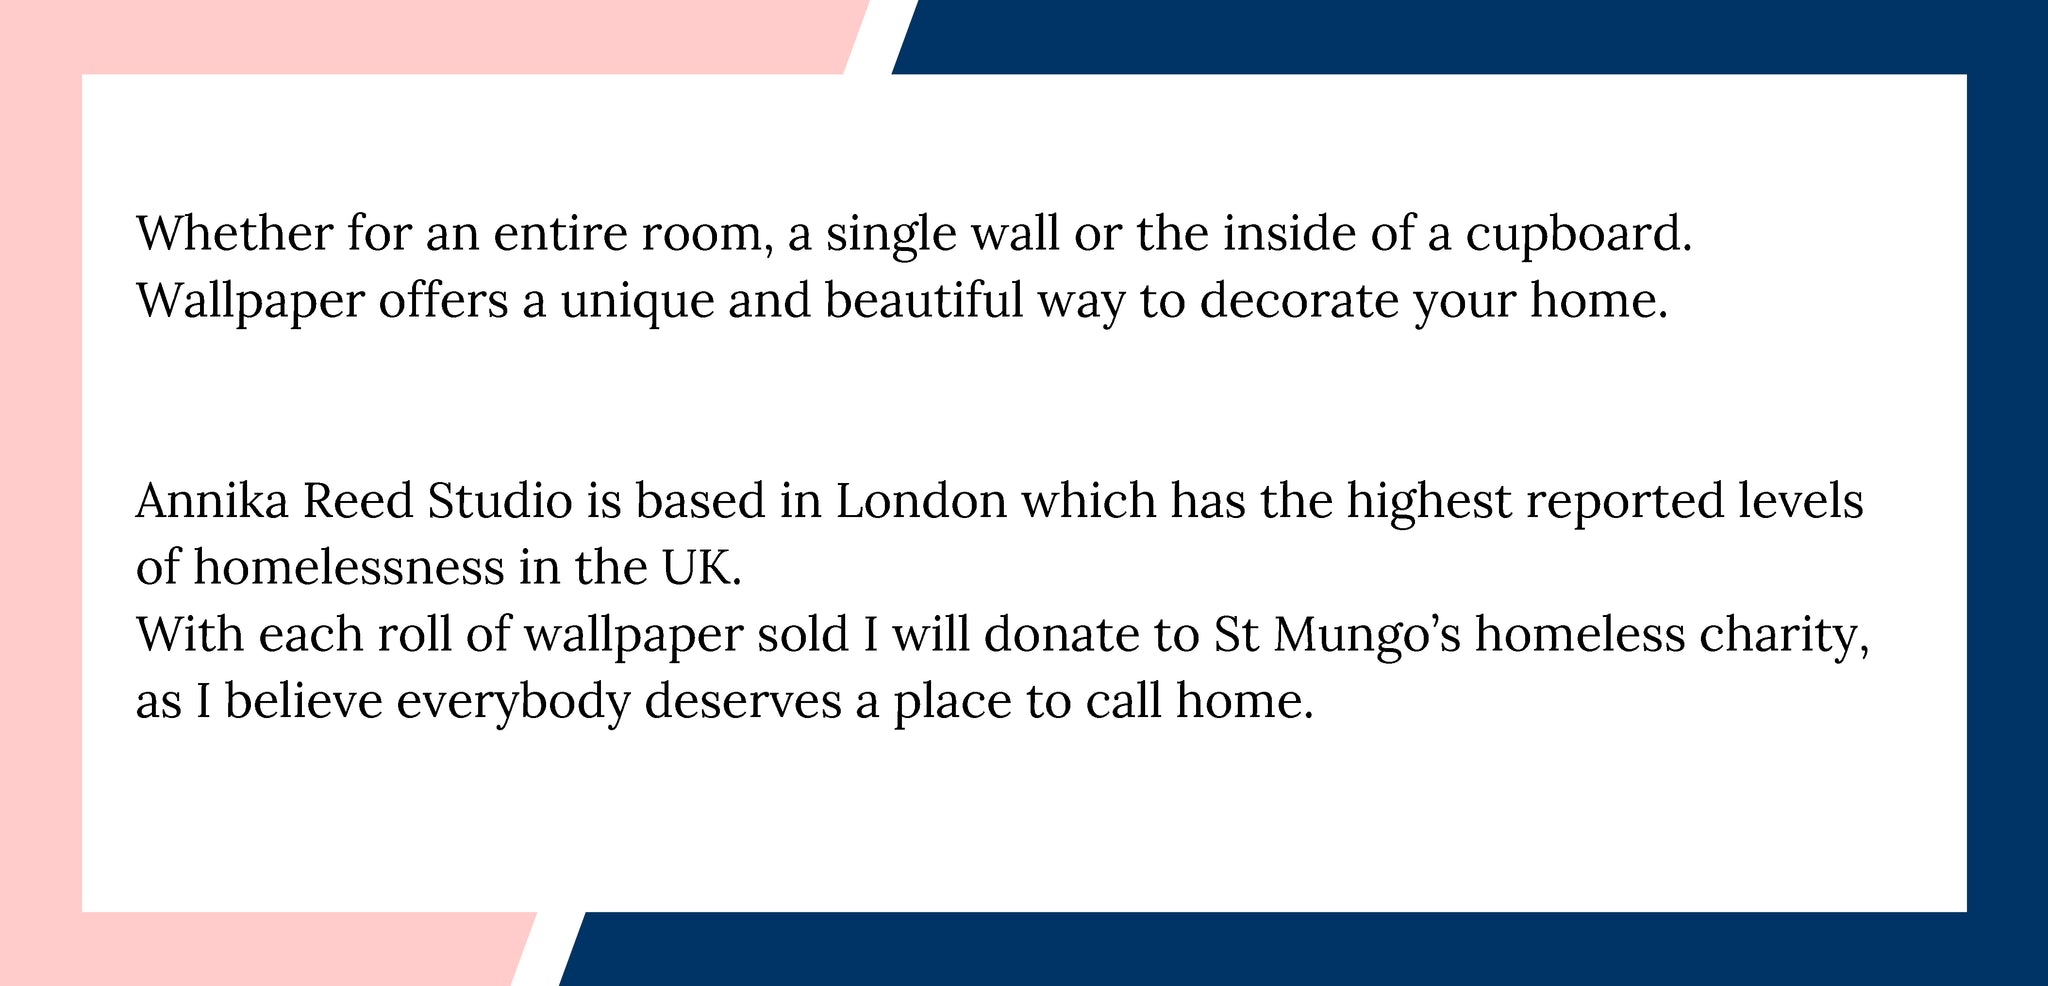 Anika Reed Studio donates to St Mungo's with every roll of wallpaper sold